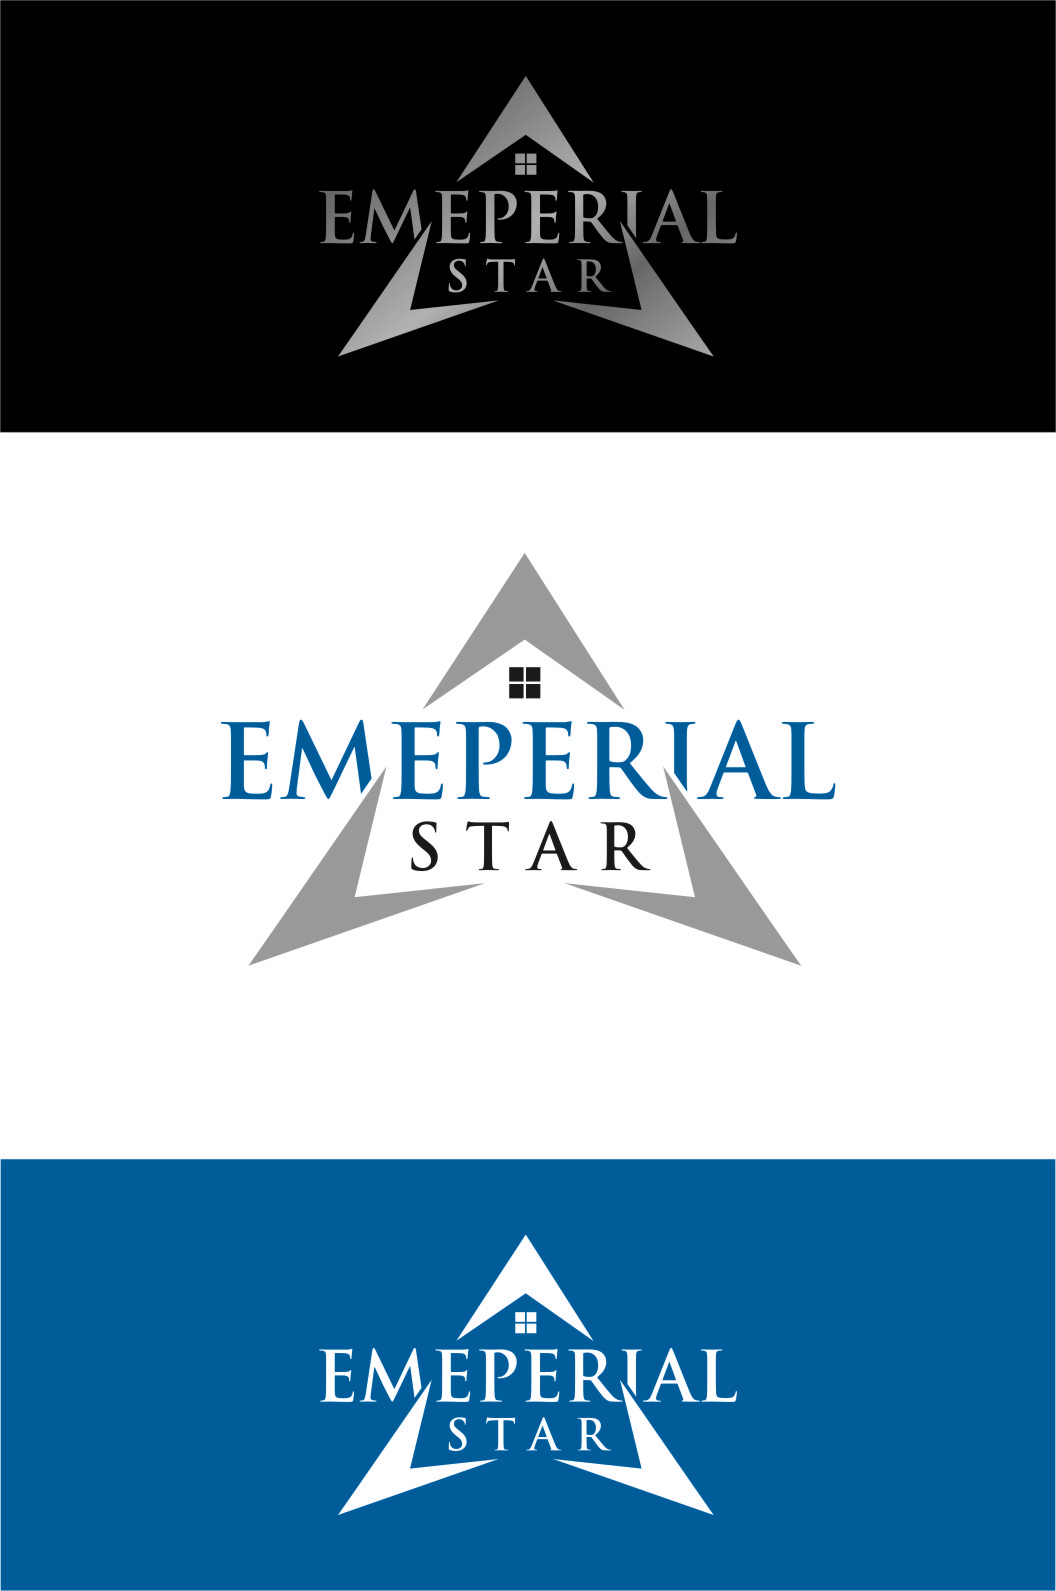 Logo Design by Ngepet_art - Entry No. 80 in the Logo Design Contest Emperial Star Logo Design.